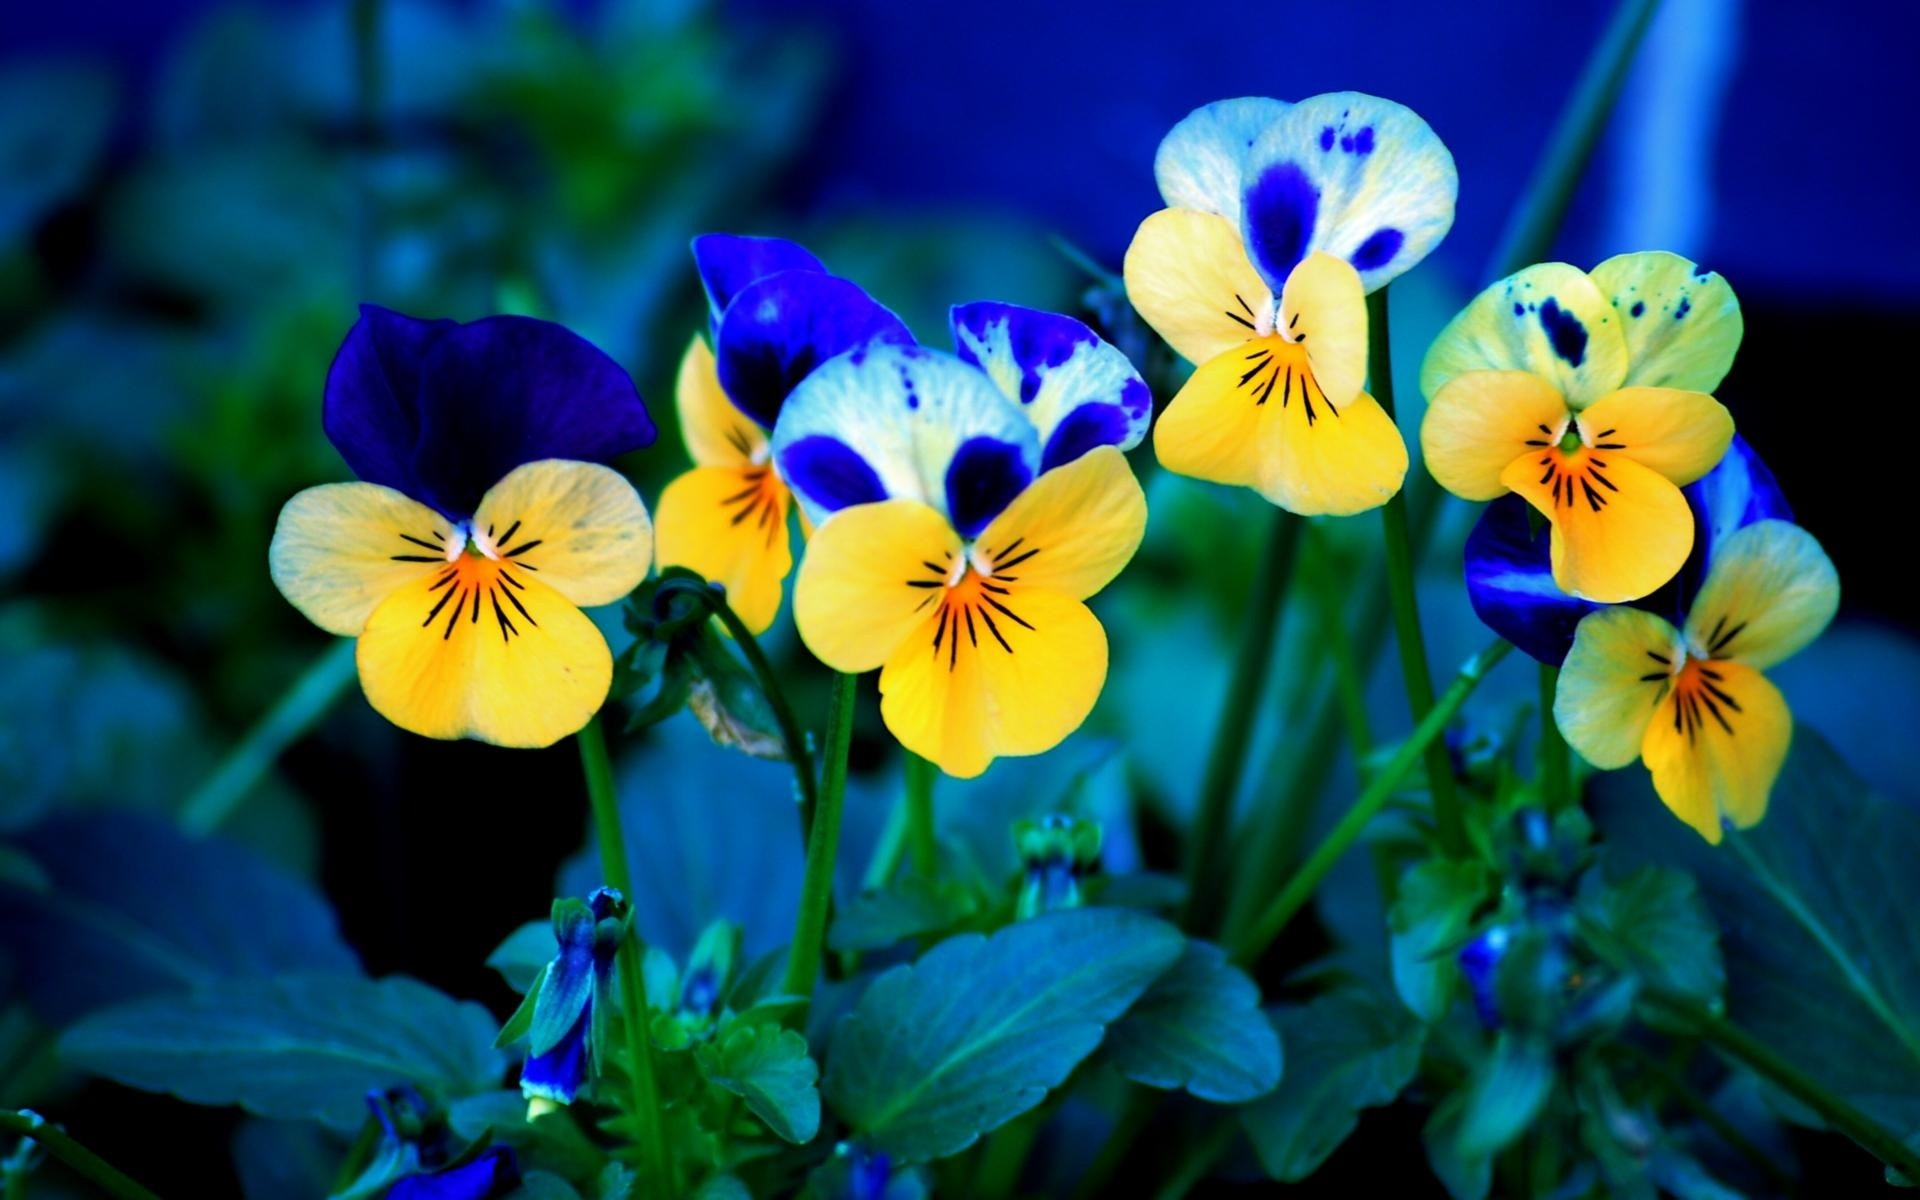 Wallpaper spring flowers wallpaper download free pic wpb00443 download mightylinksfo